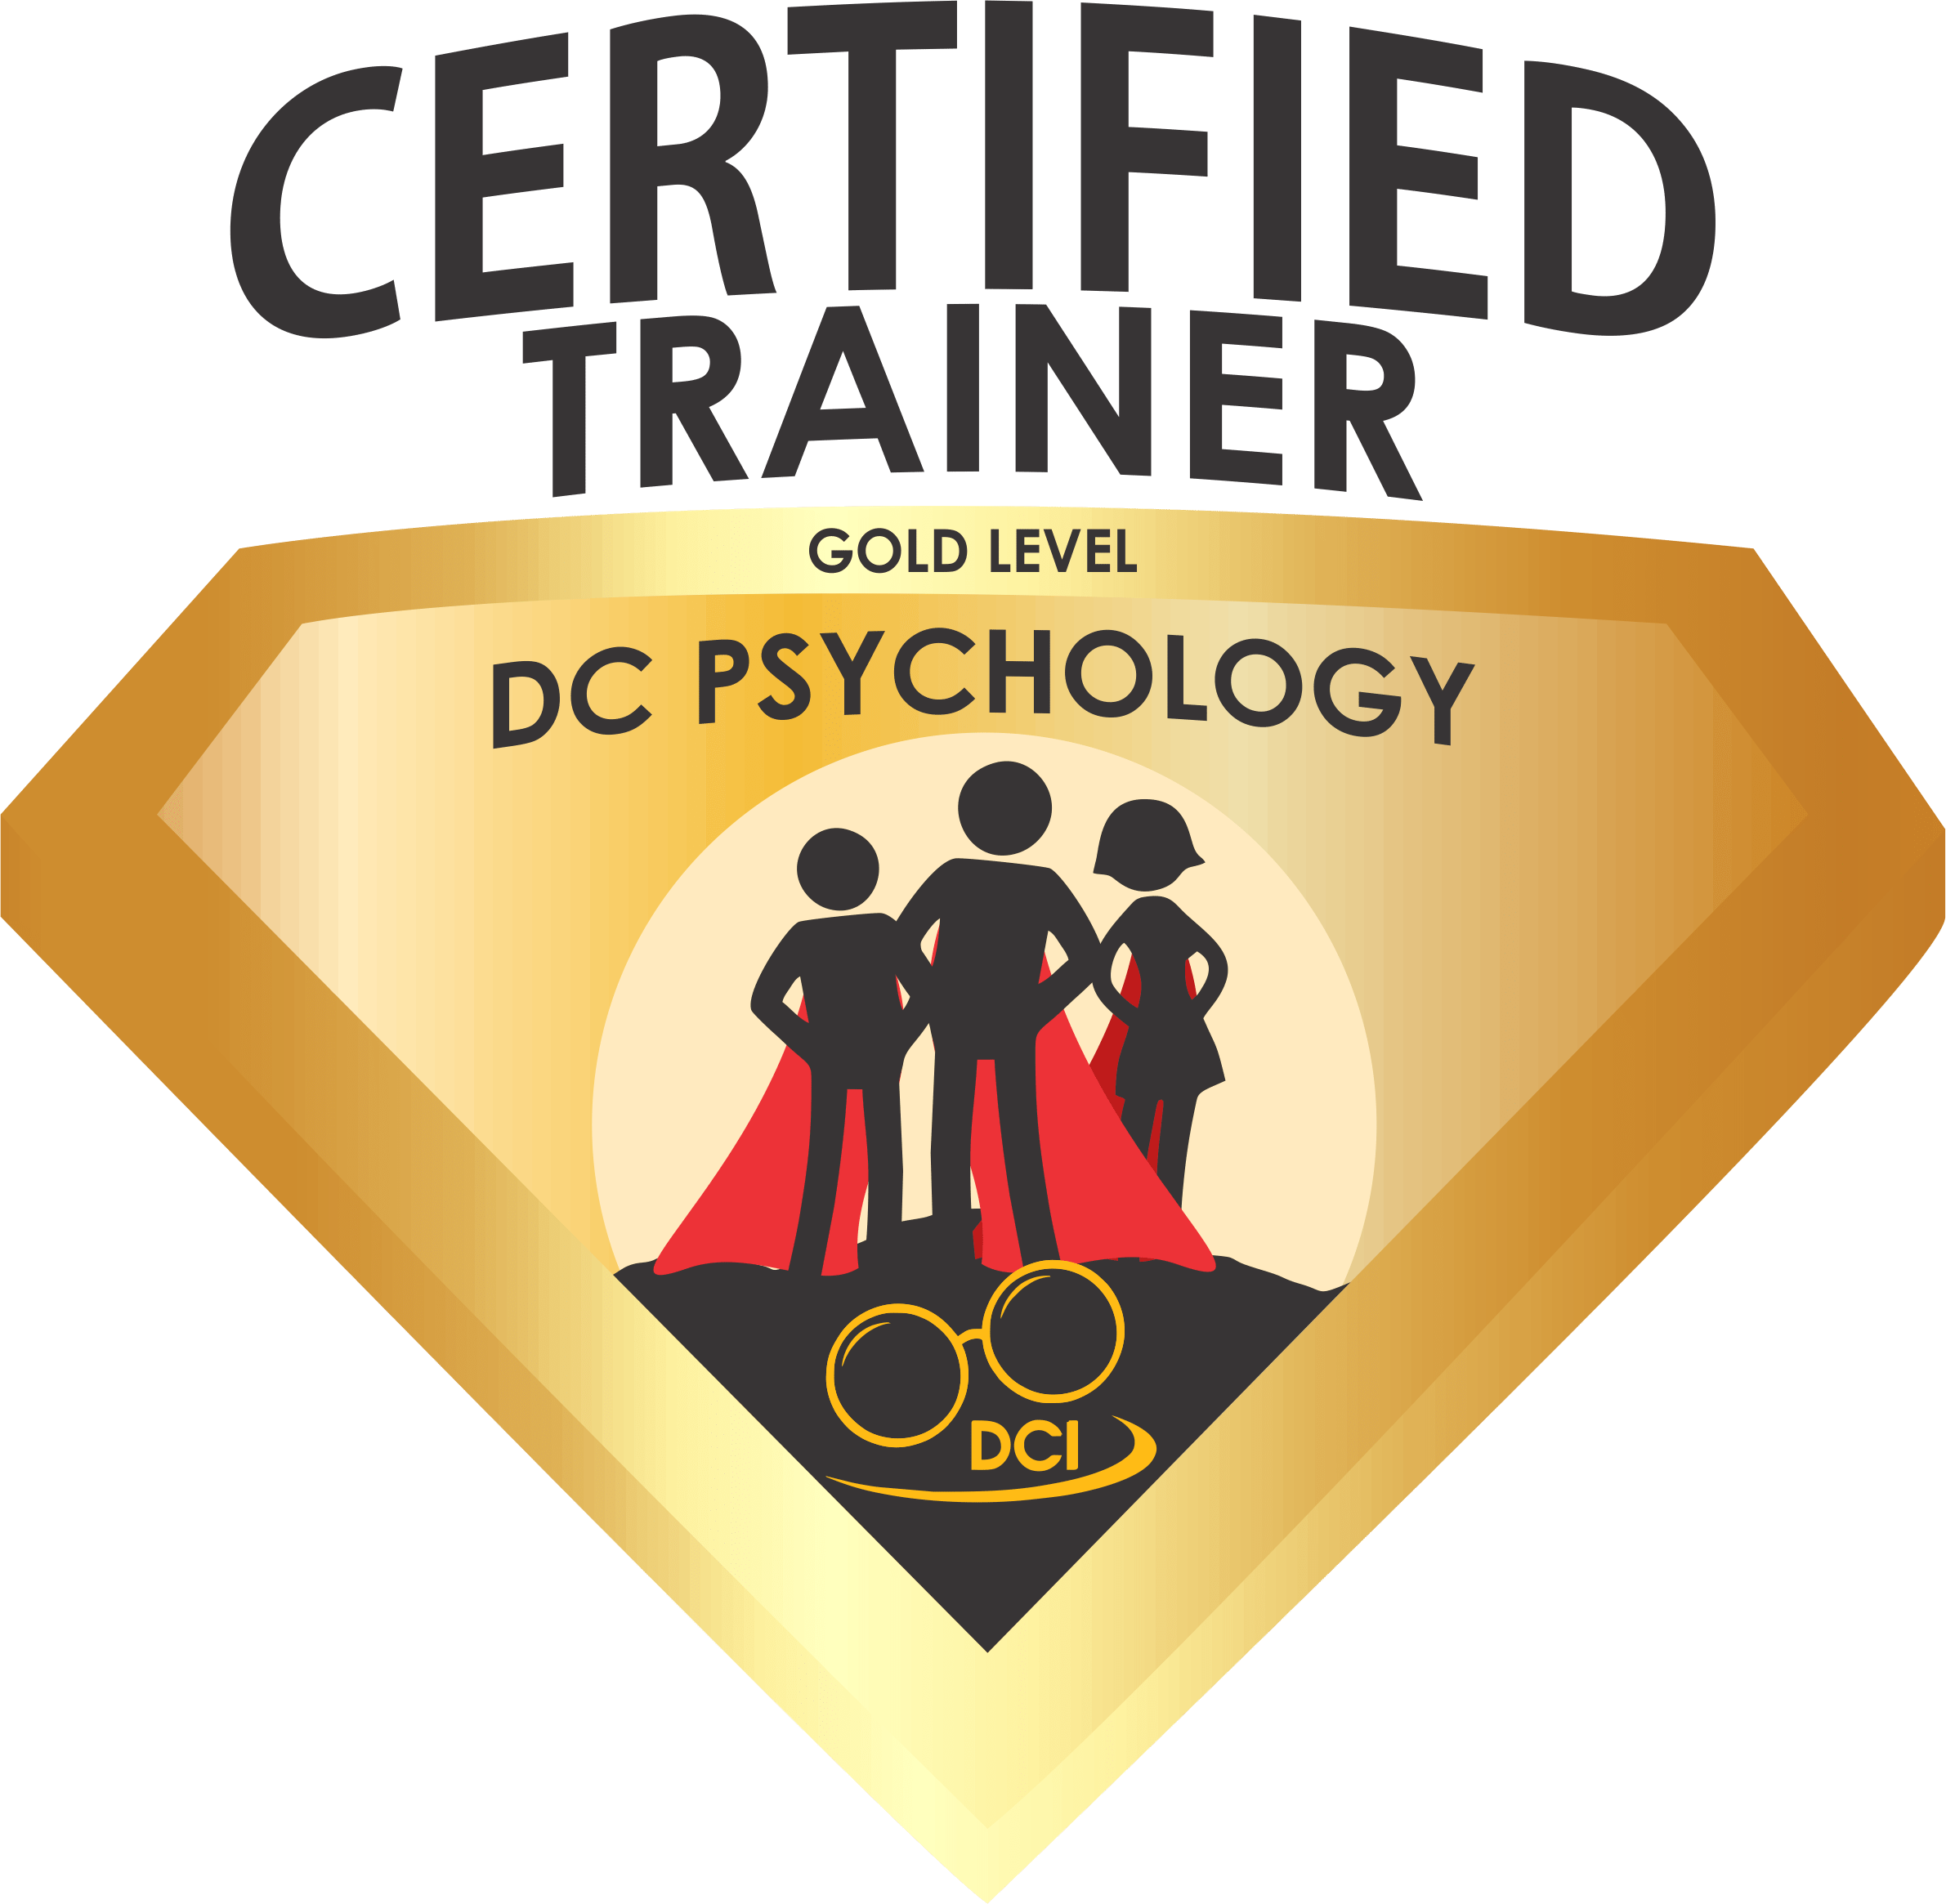 Achievement-Level-Certification-certified-trainer-gold